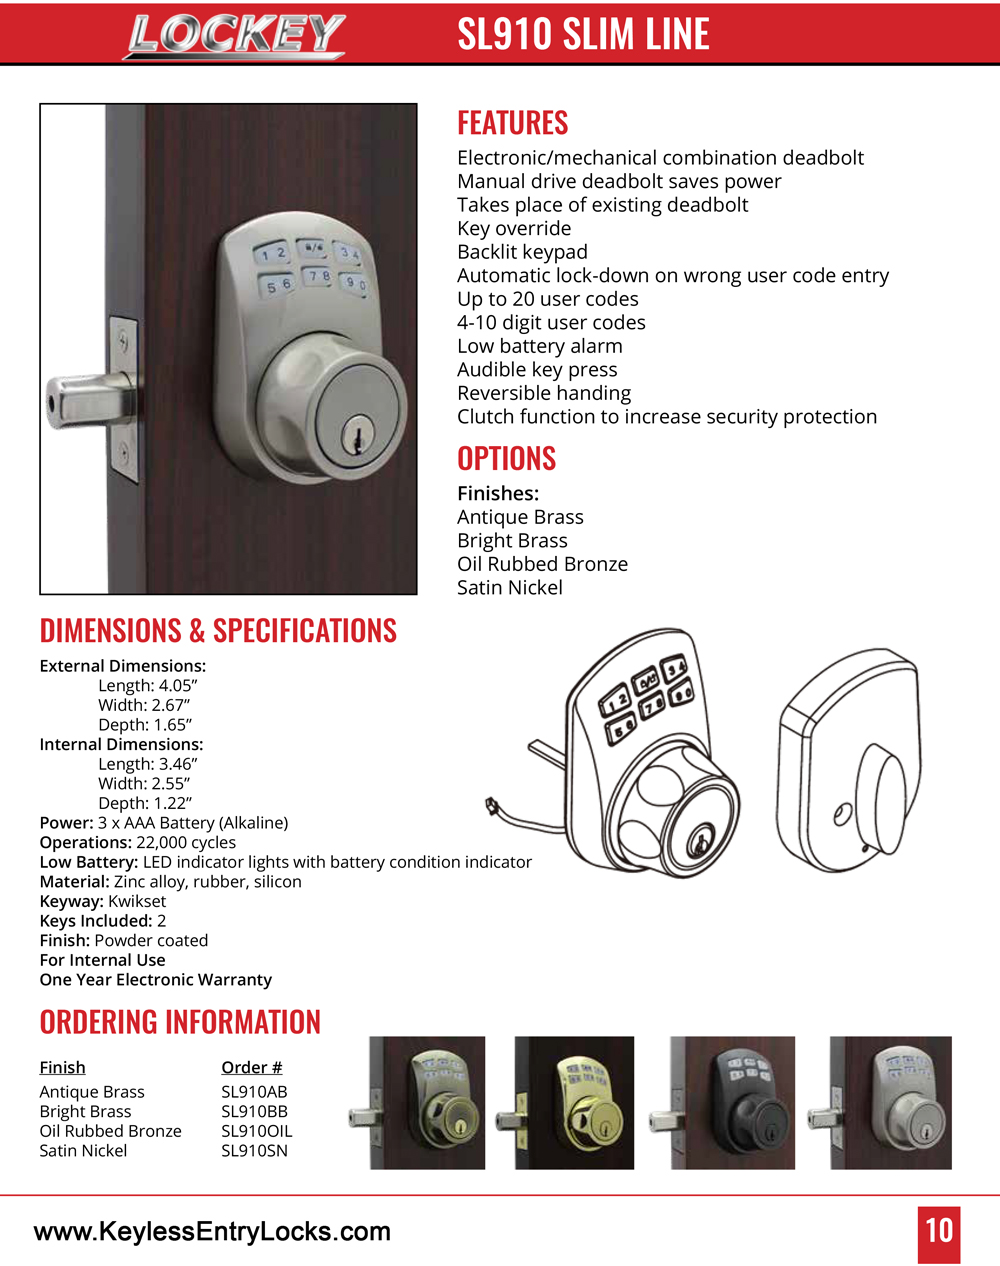 Lockey SL910 Slim Line Keypad Deadbolt Lock